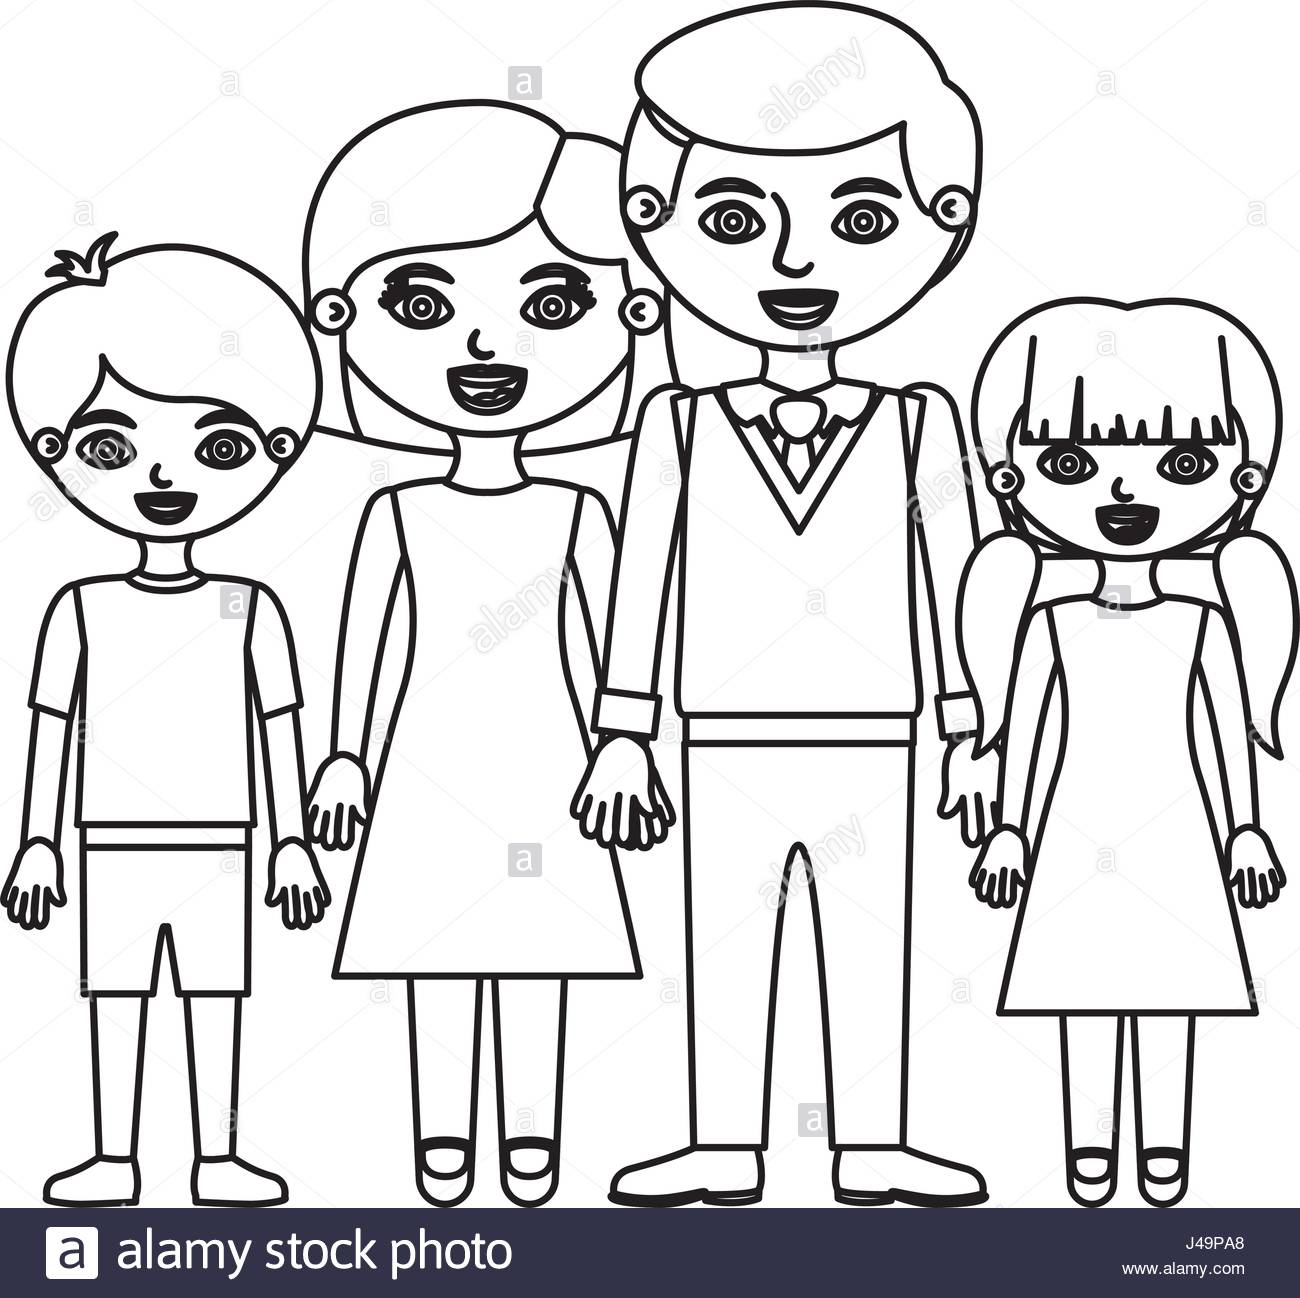 1300x1298 Sketch Silhouette Family Group With Parents And Children Taken